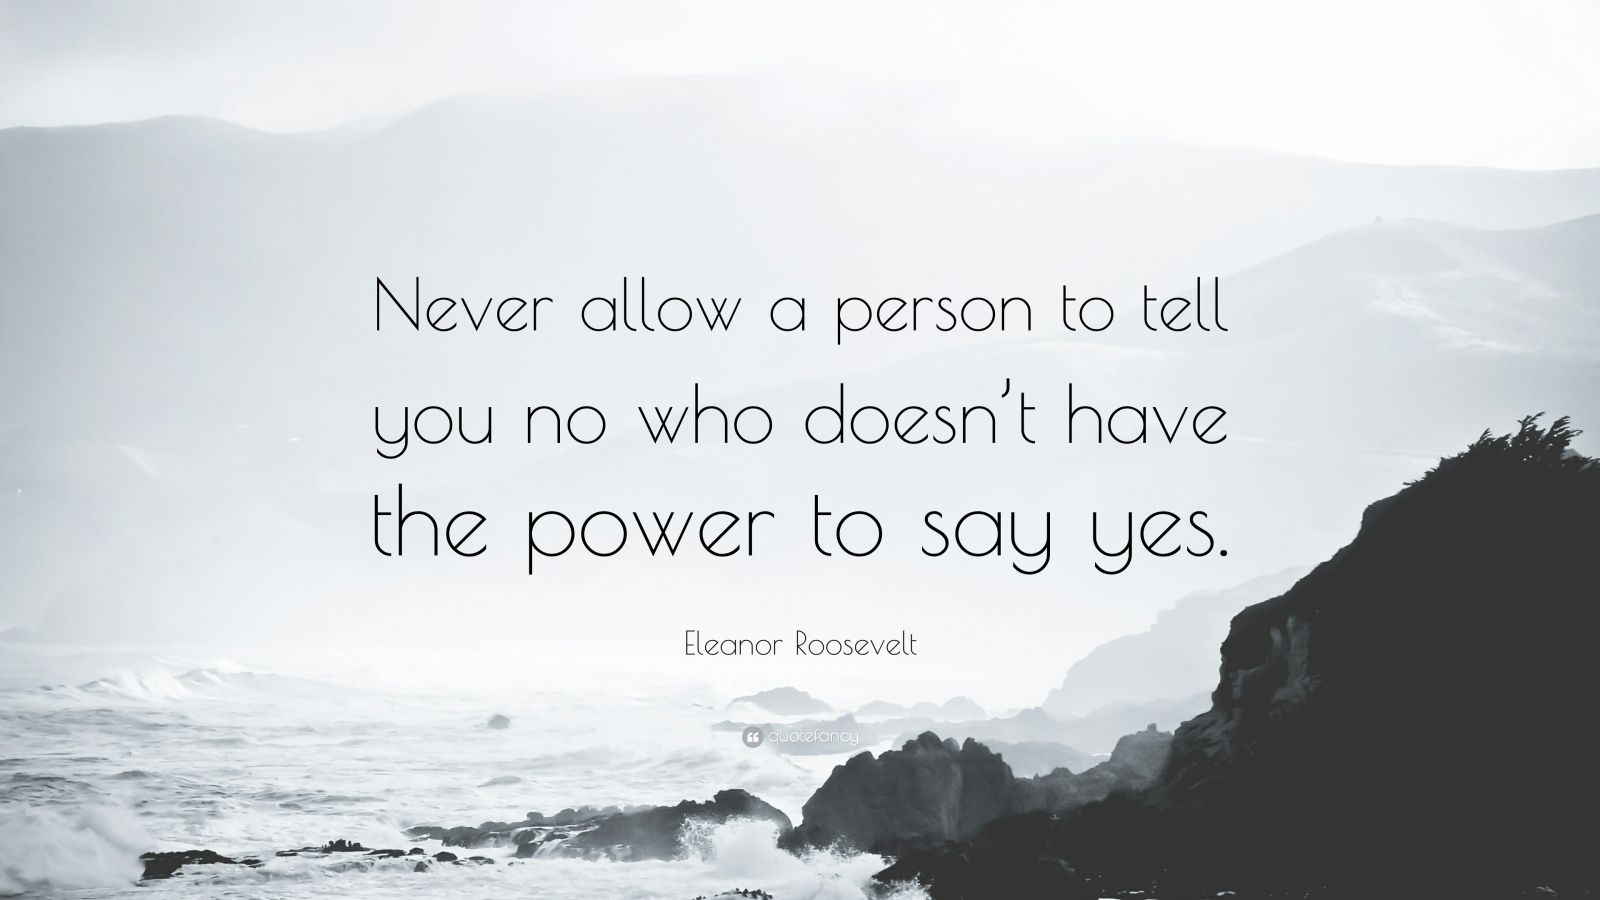 """Eleanor Roosevelt Quote: """"Never allow a person to tell you no who doesn't have the power to say yes."""""""